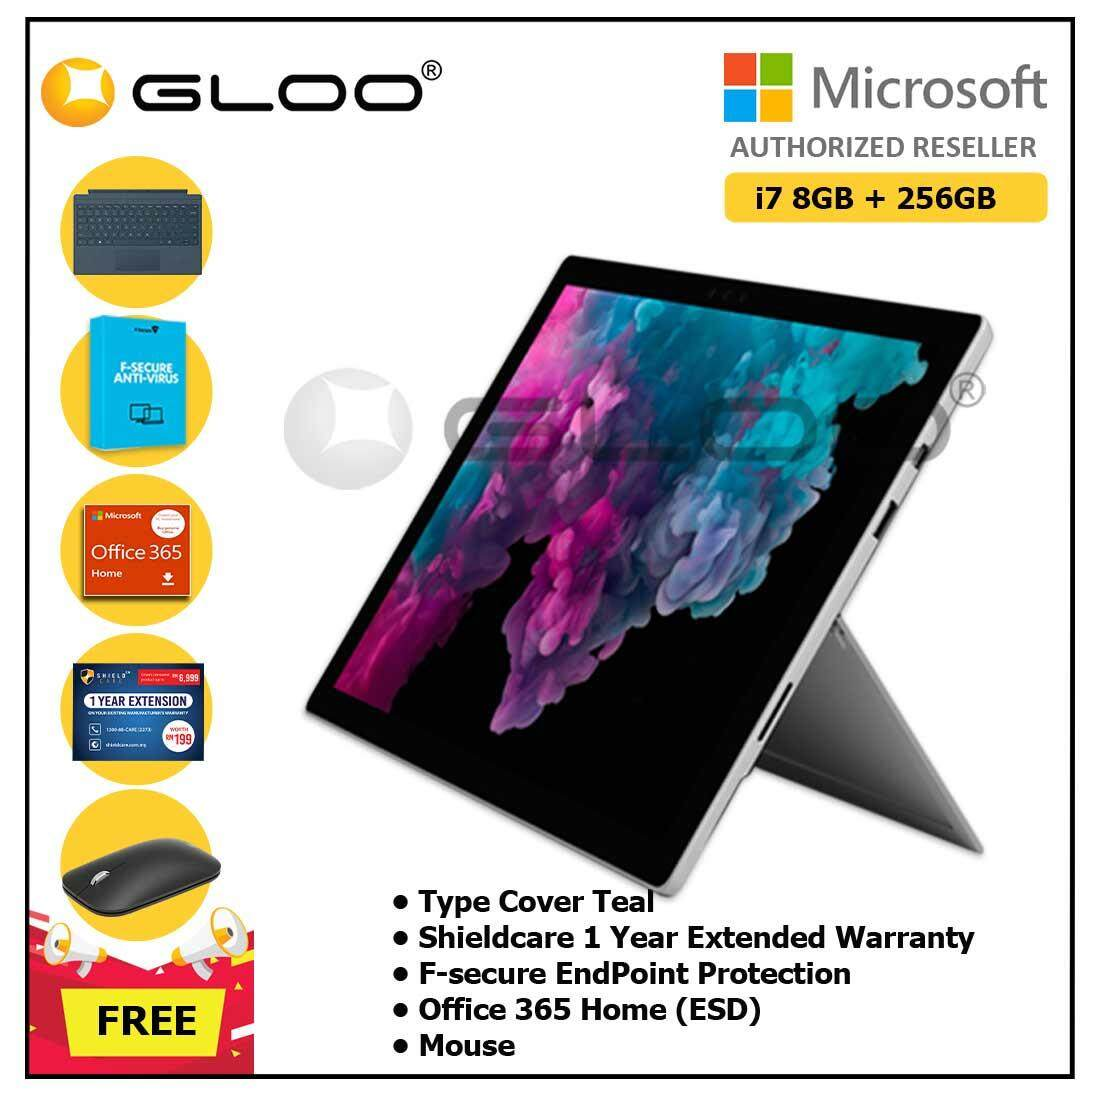 Microsoft Surface Pro 6 Core i7/8GB RAM - 256GB + Type Cover Cobalt Blue + Office 365 Home (ESD) + Shieldcare 1 Year Extended Warranty + F-Secure Endpoint Protection + Mouse